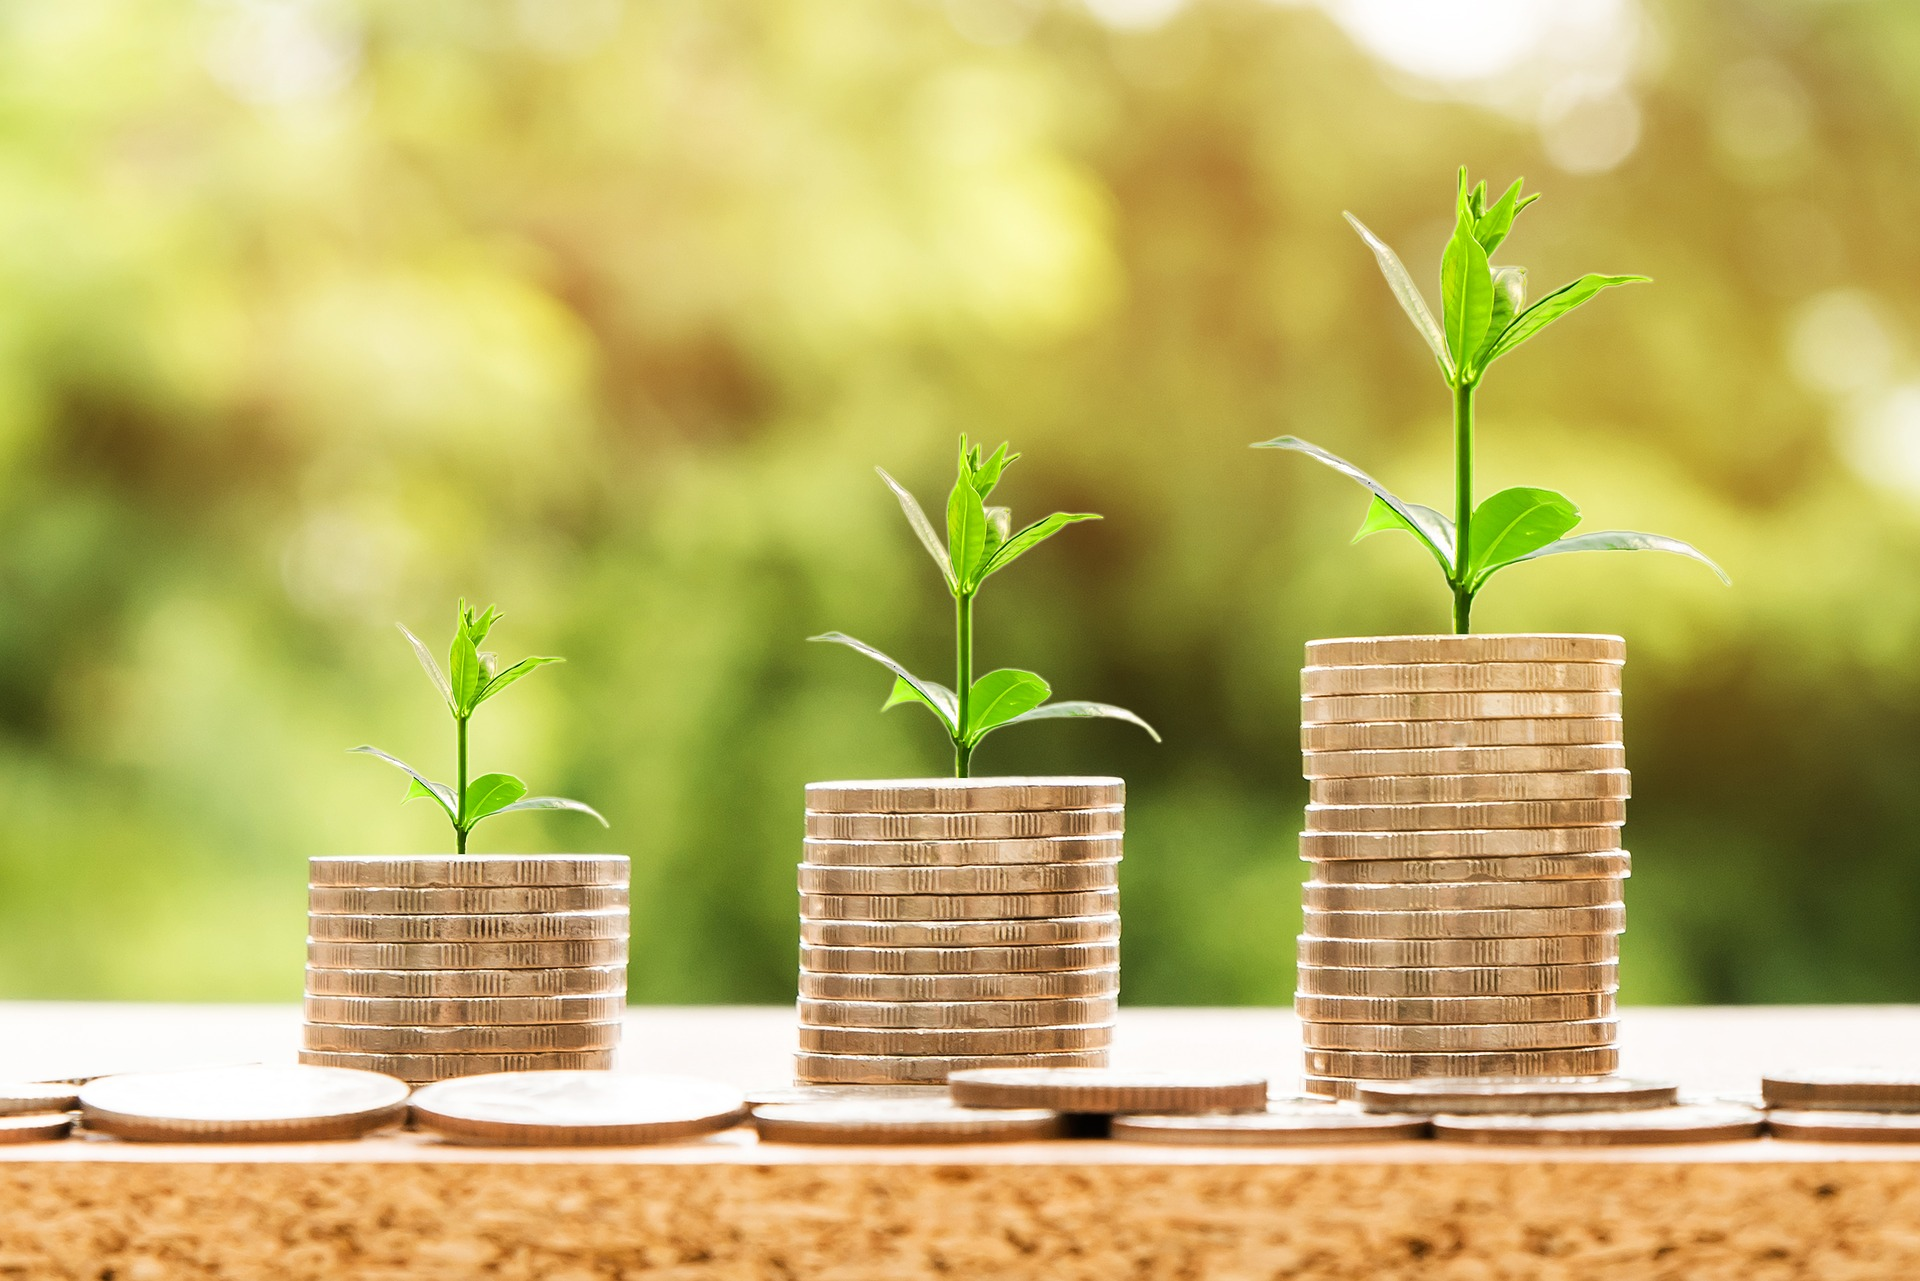 True Costs of Investing in a Business (And Ways to Raise Funds)